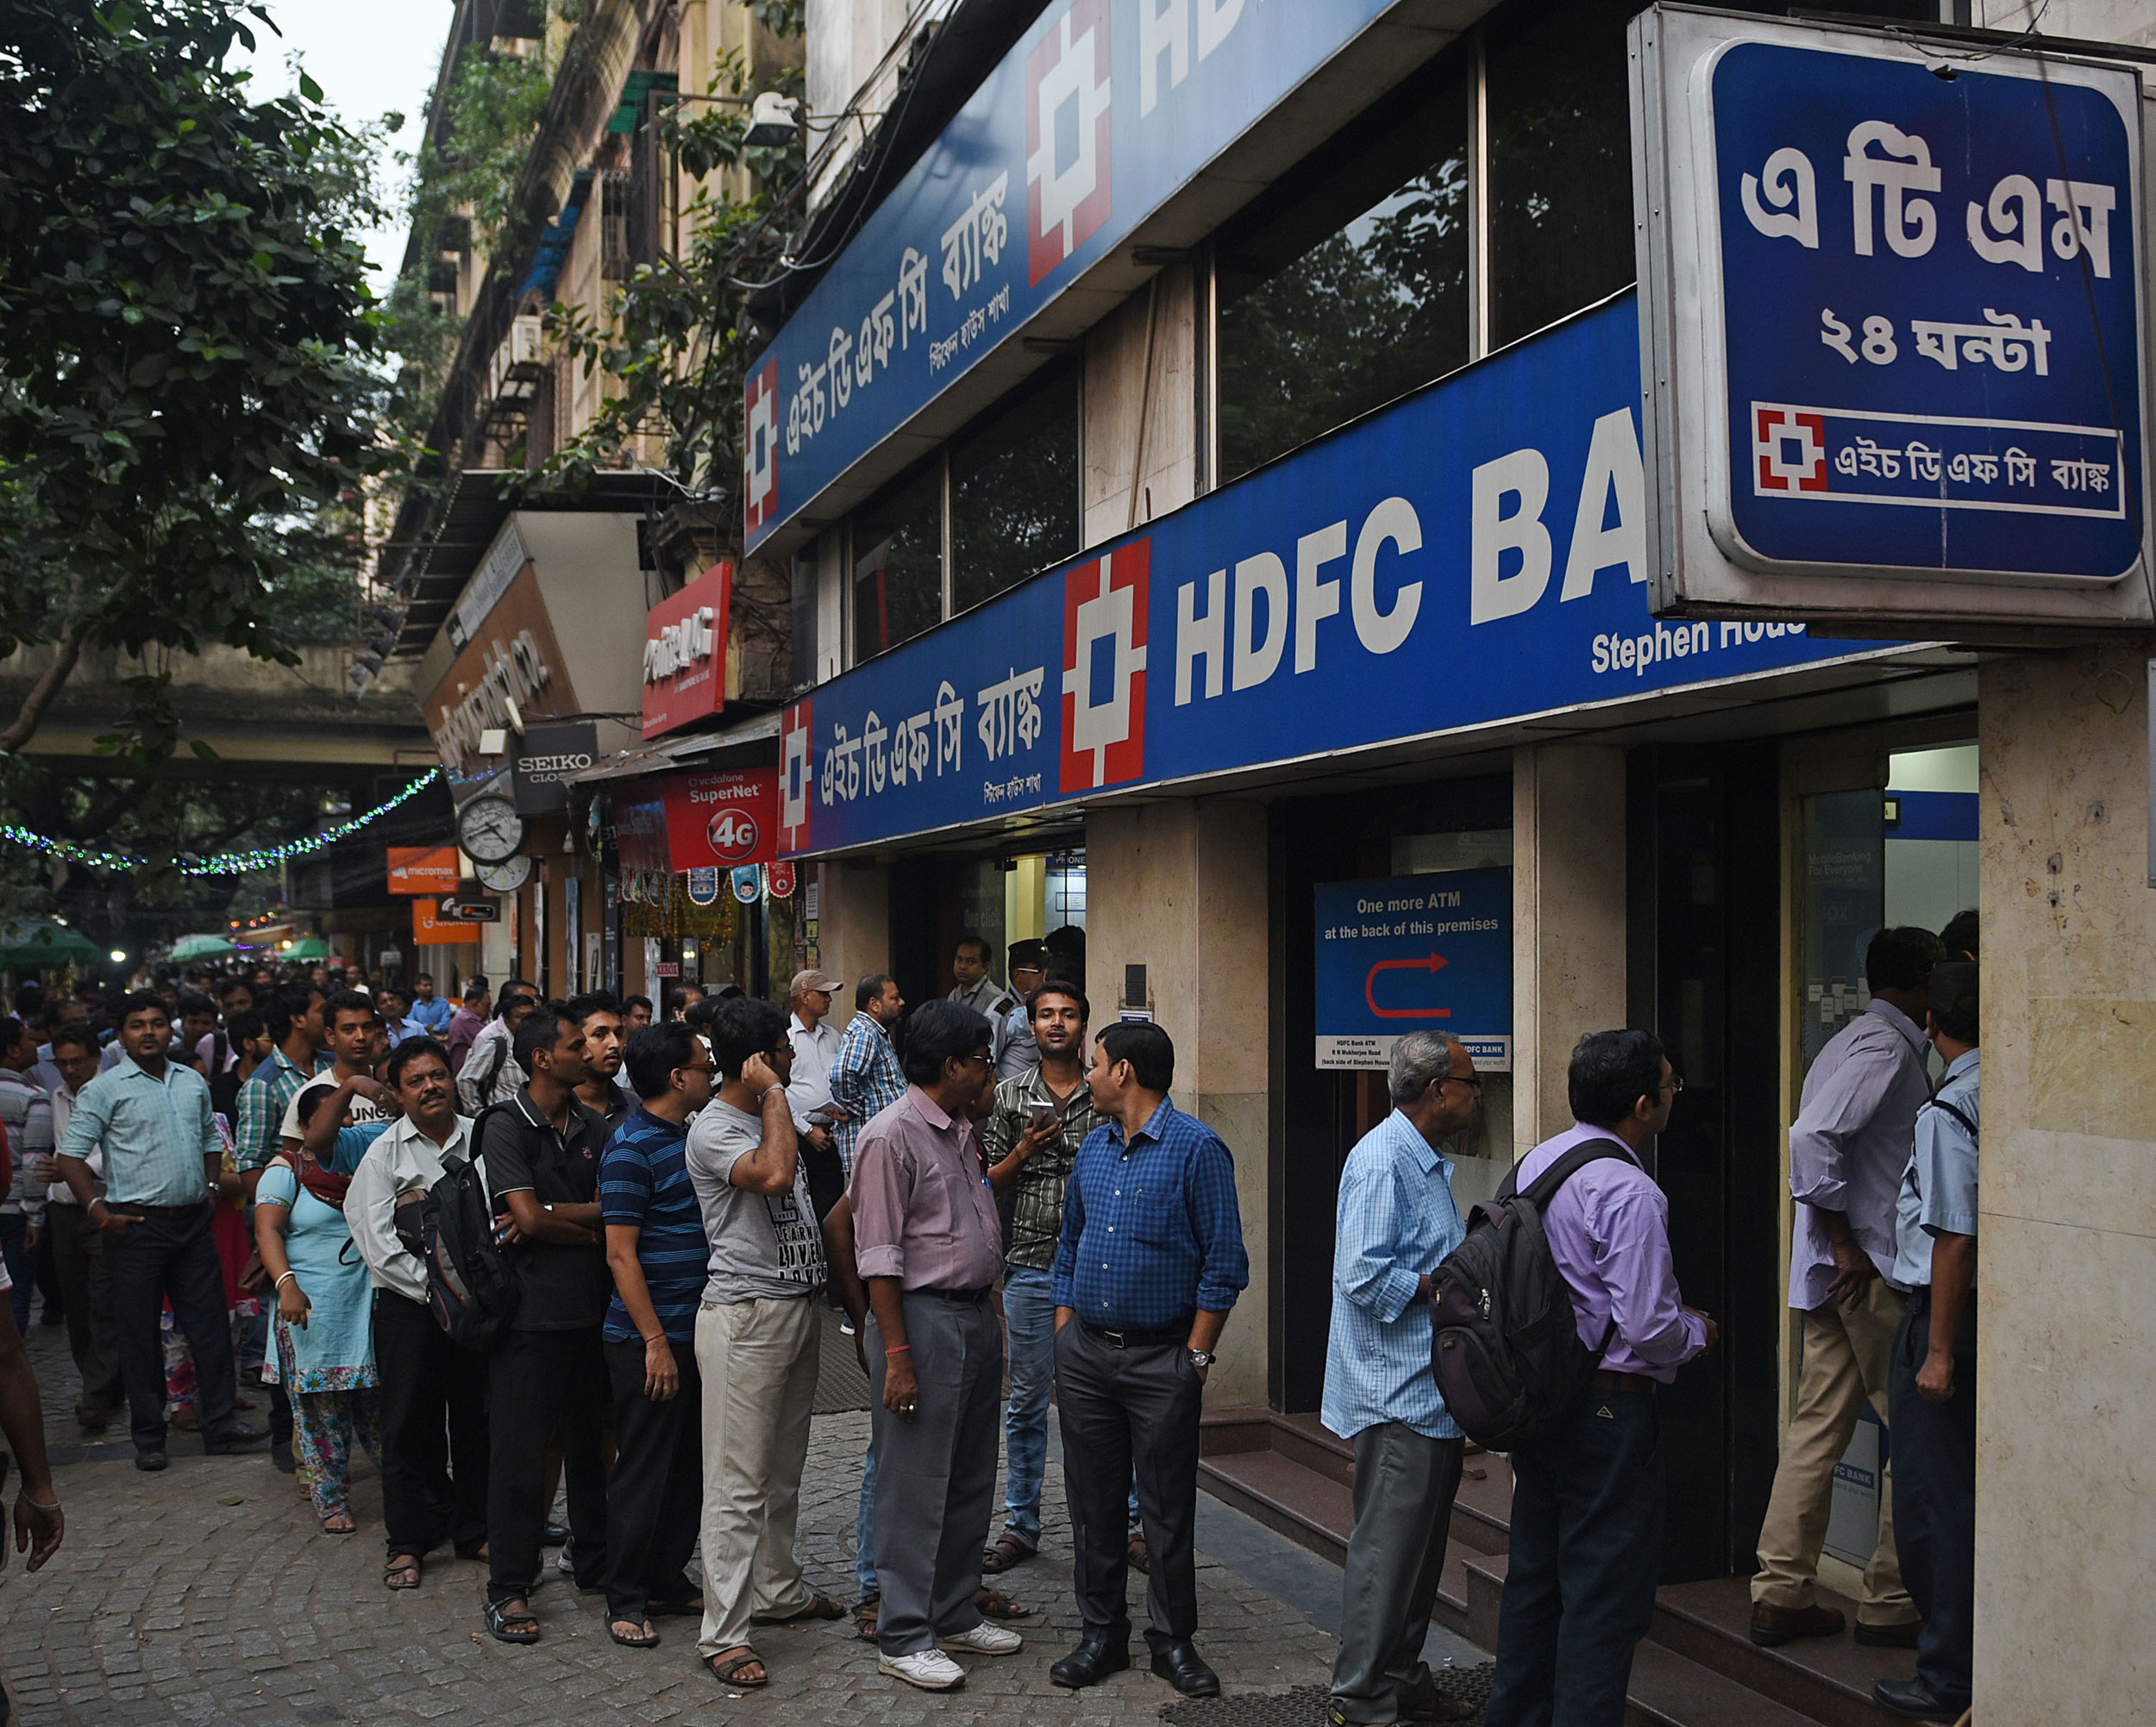 The lender said fees and commission income for the quarter, at Rs 3,295.6 crore, constituted 82 per cent of the other income and showed a growth of 26.1 per cent over Rs 2,614.0 crore in the same period last year.